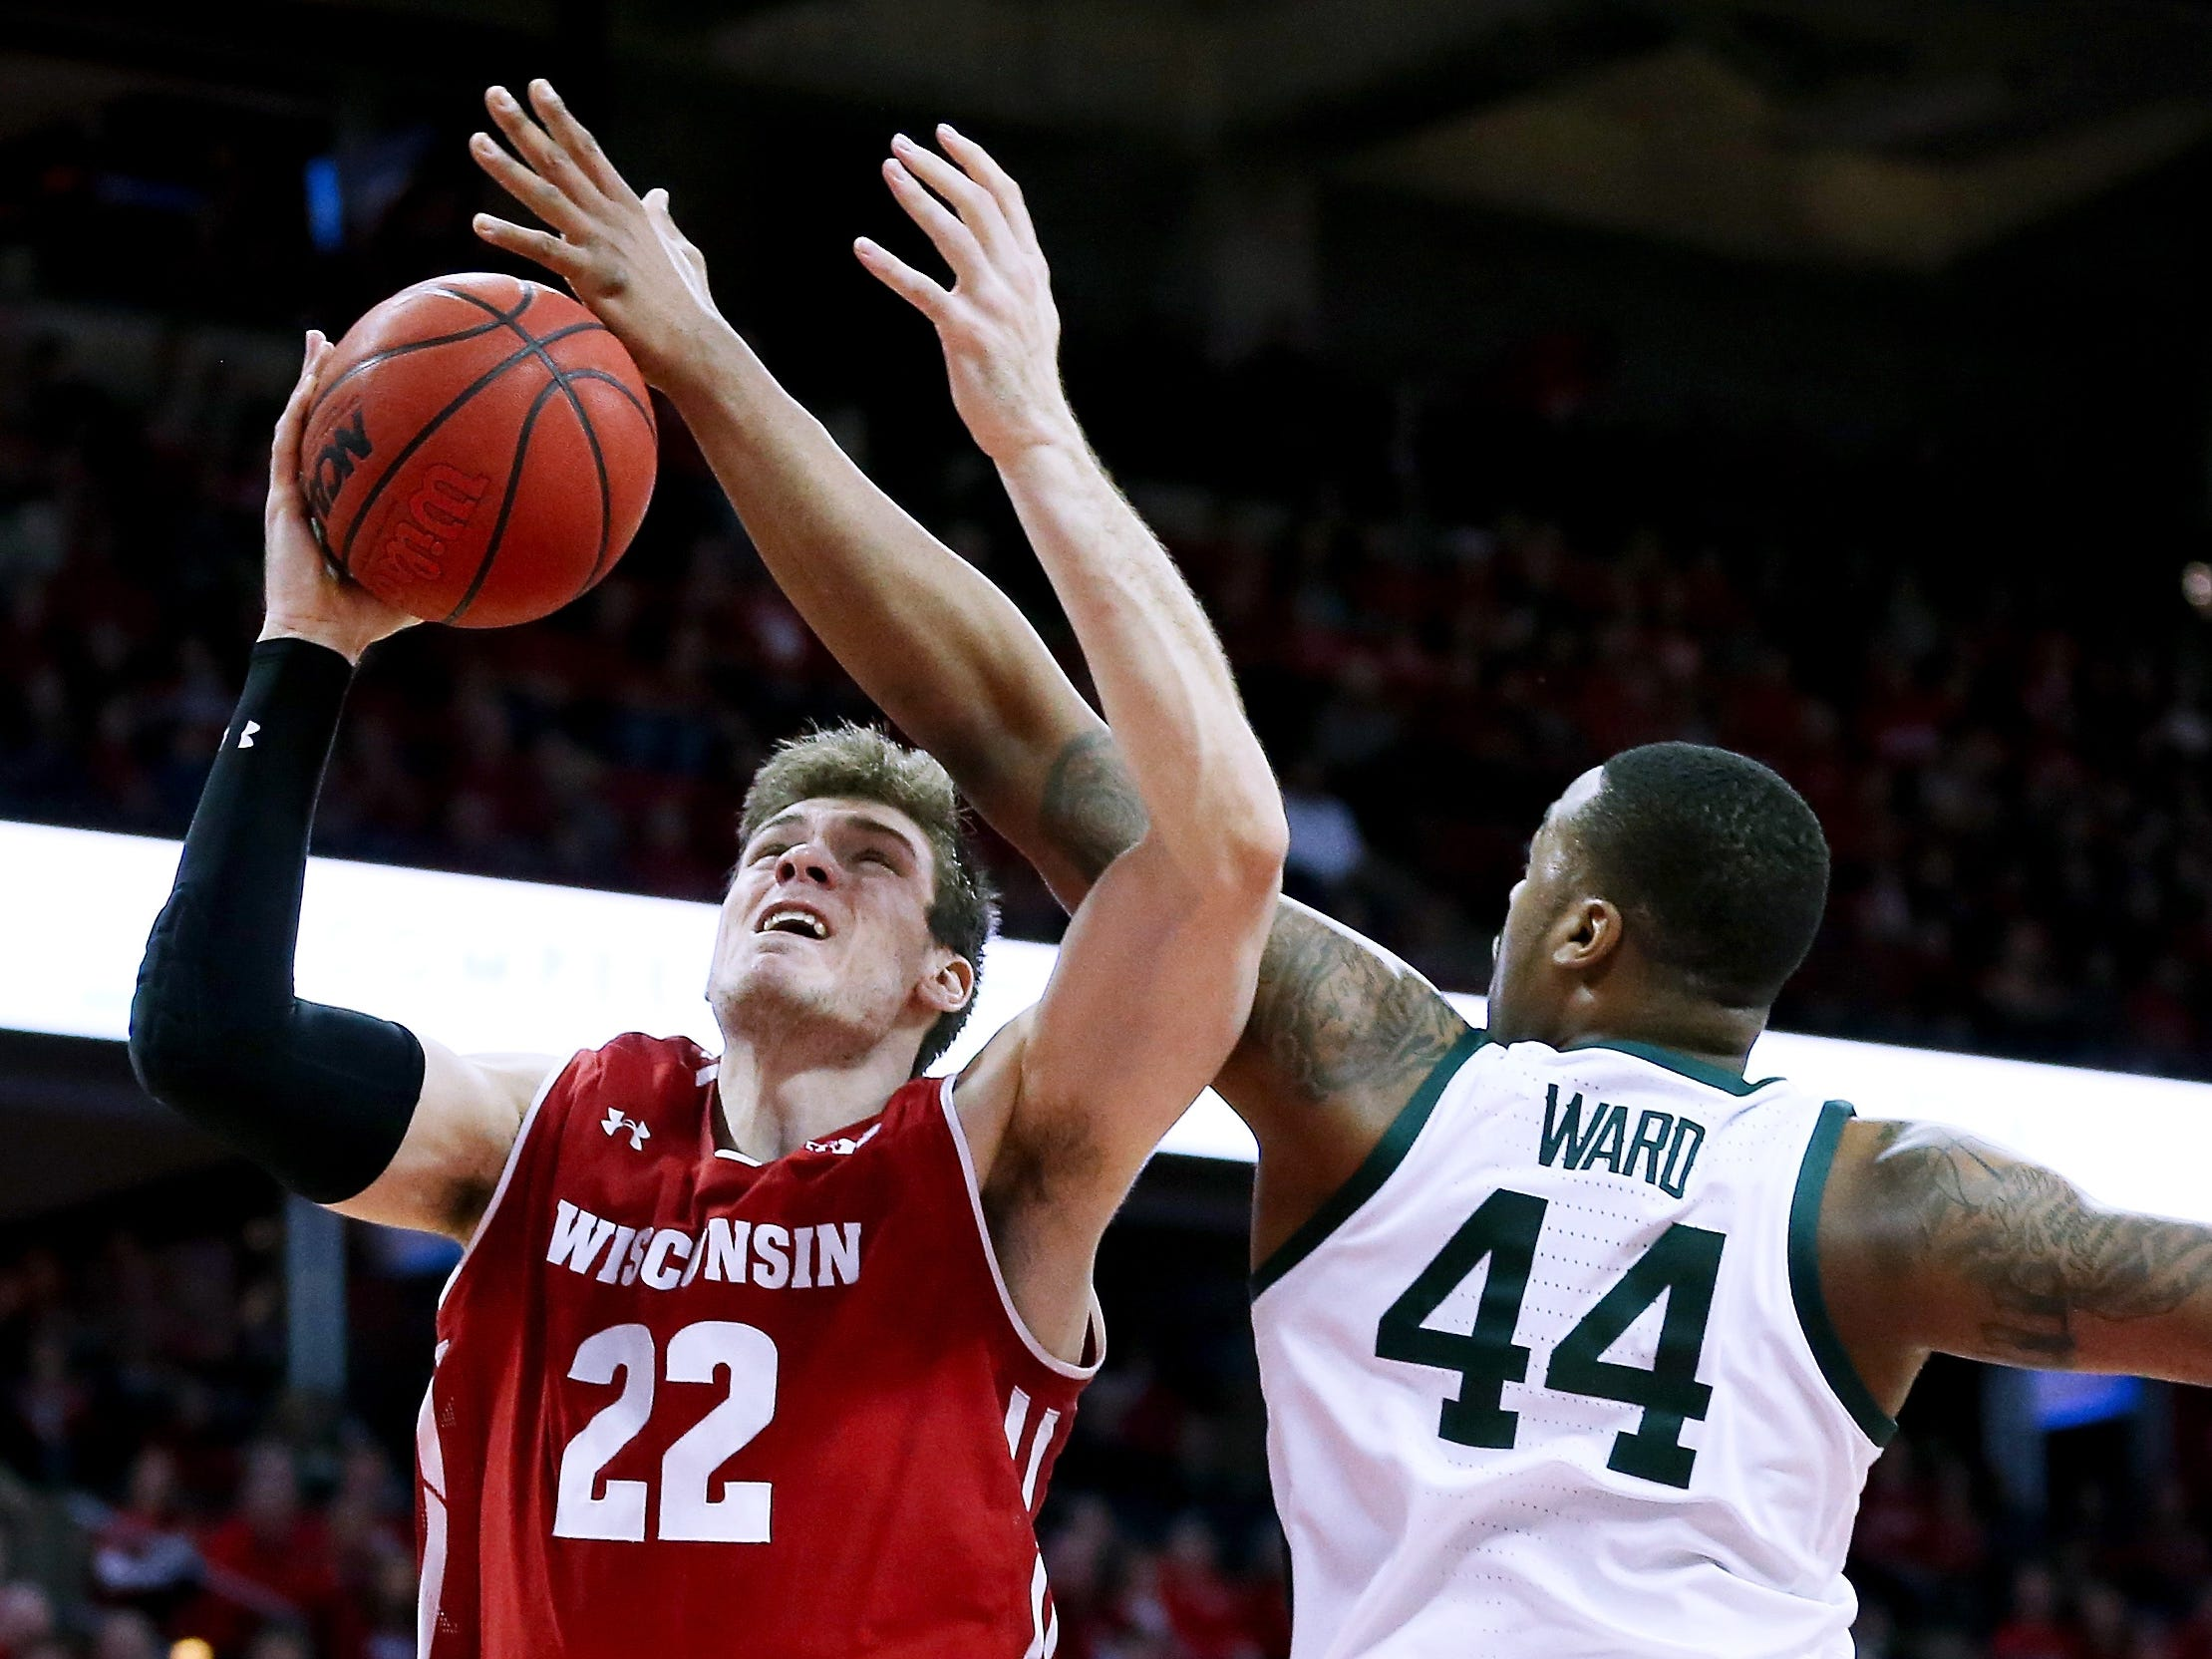 Nick Ward #44 of the Michigan State Spartans blocks a shot attempt by Ethan Happ #22 of the Wisconsin Badgers in the first half at the Kohl Center on February 12, 2019 in Madison, Wisconsin.